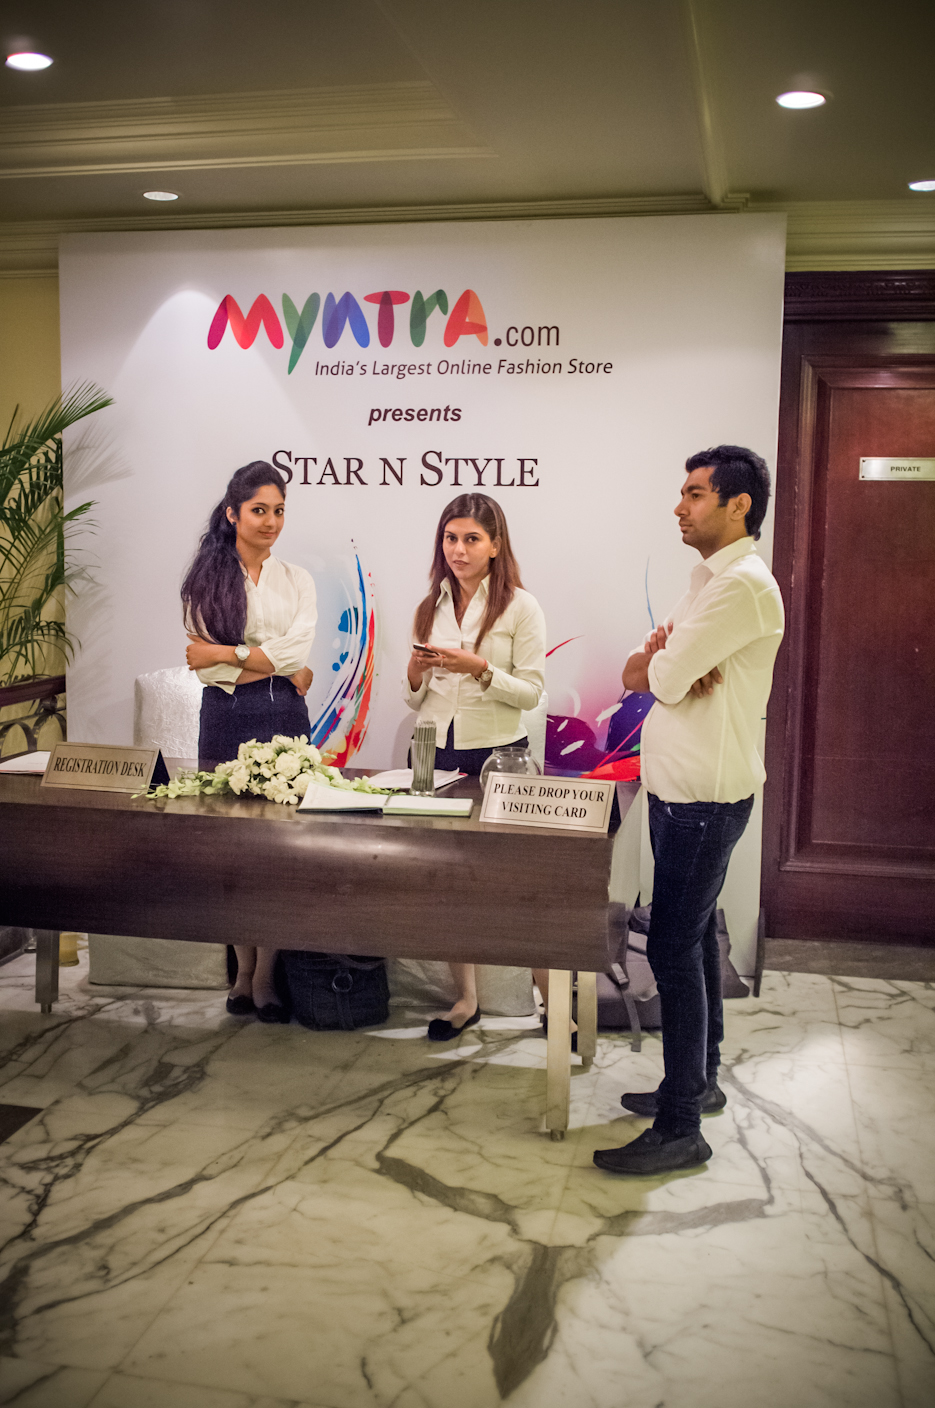 Myntra.com Star and Style Starnstyle with Kalki Koechlin. Retail Fashion Event Photography by professional Indian lifestyle photographer Naina Redhu of Naina.co